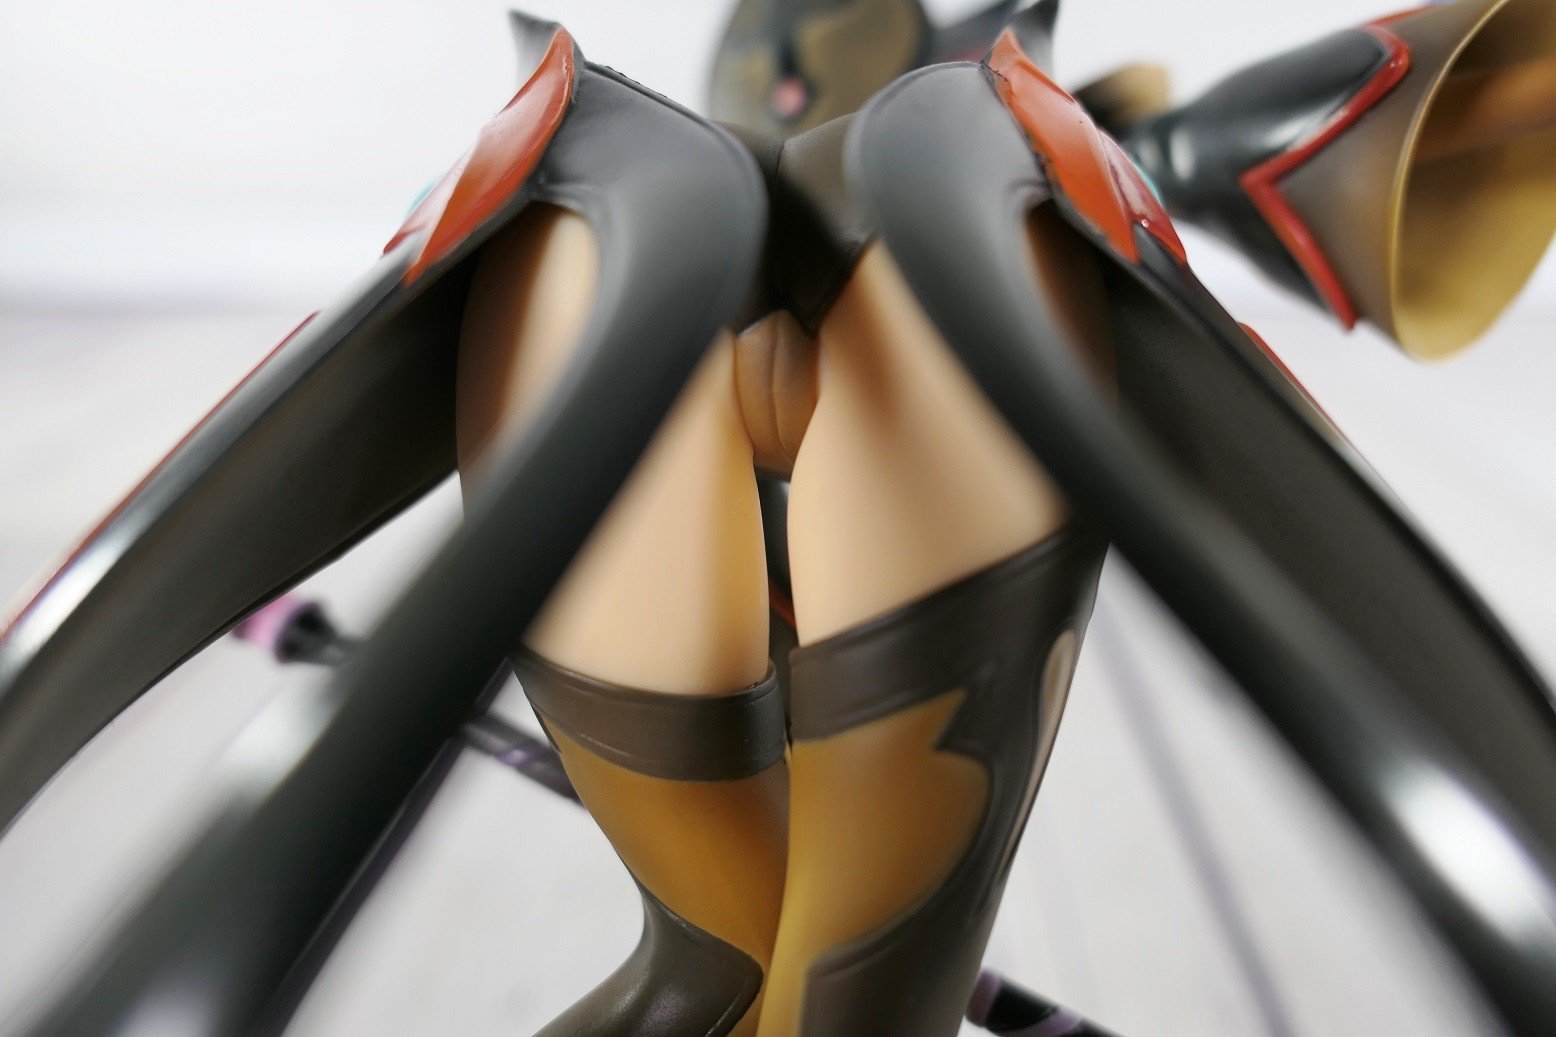 https://static.myfigurecollection.net/upload/pictures/2020/08/11/2494253.jpeg